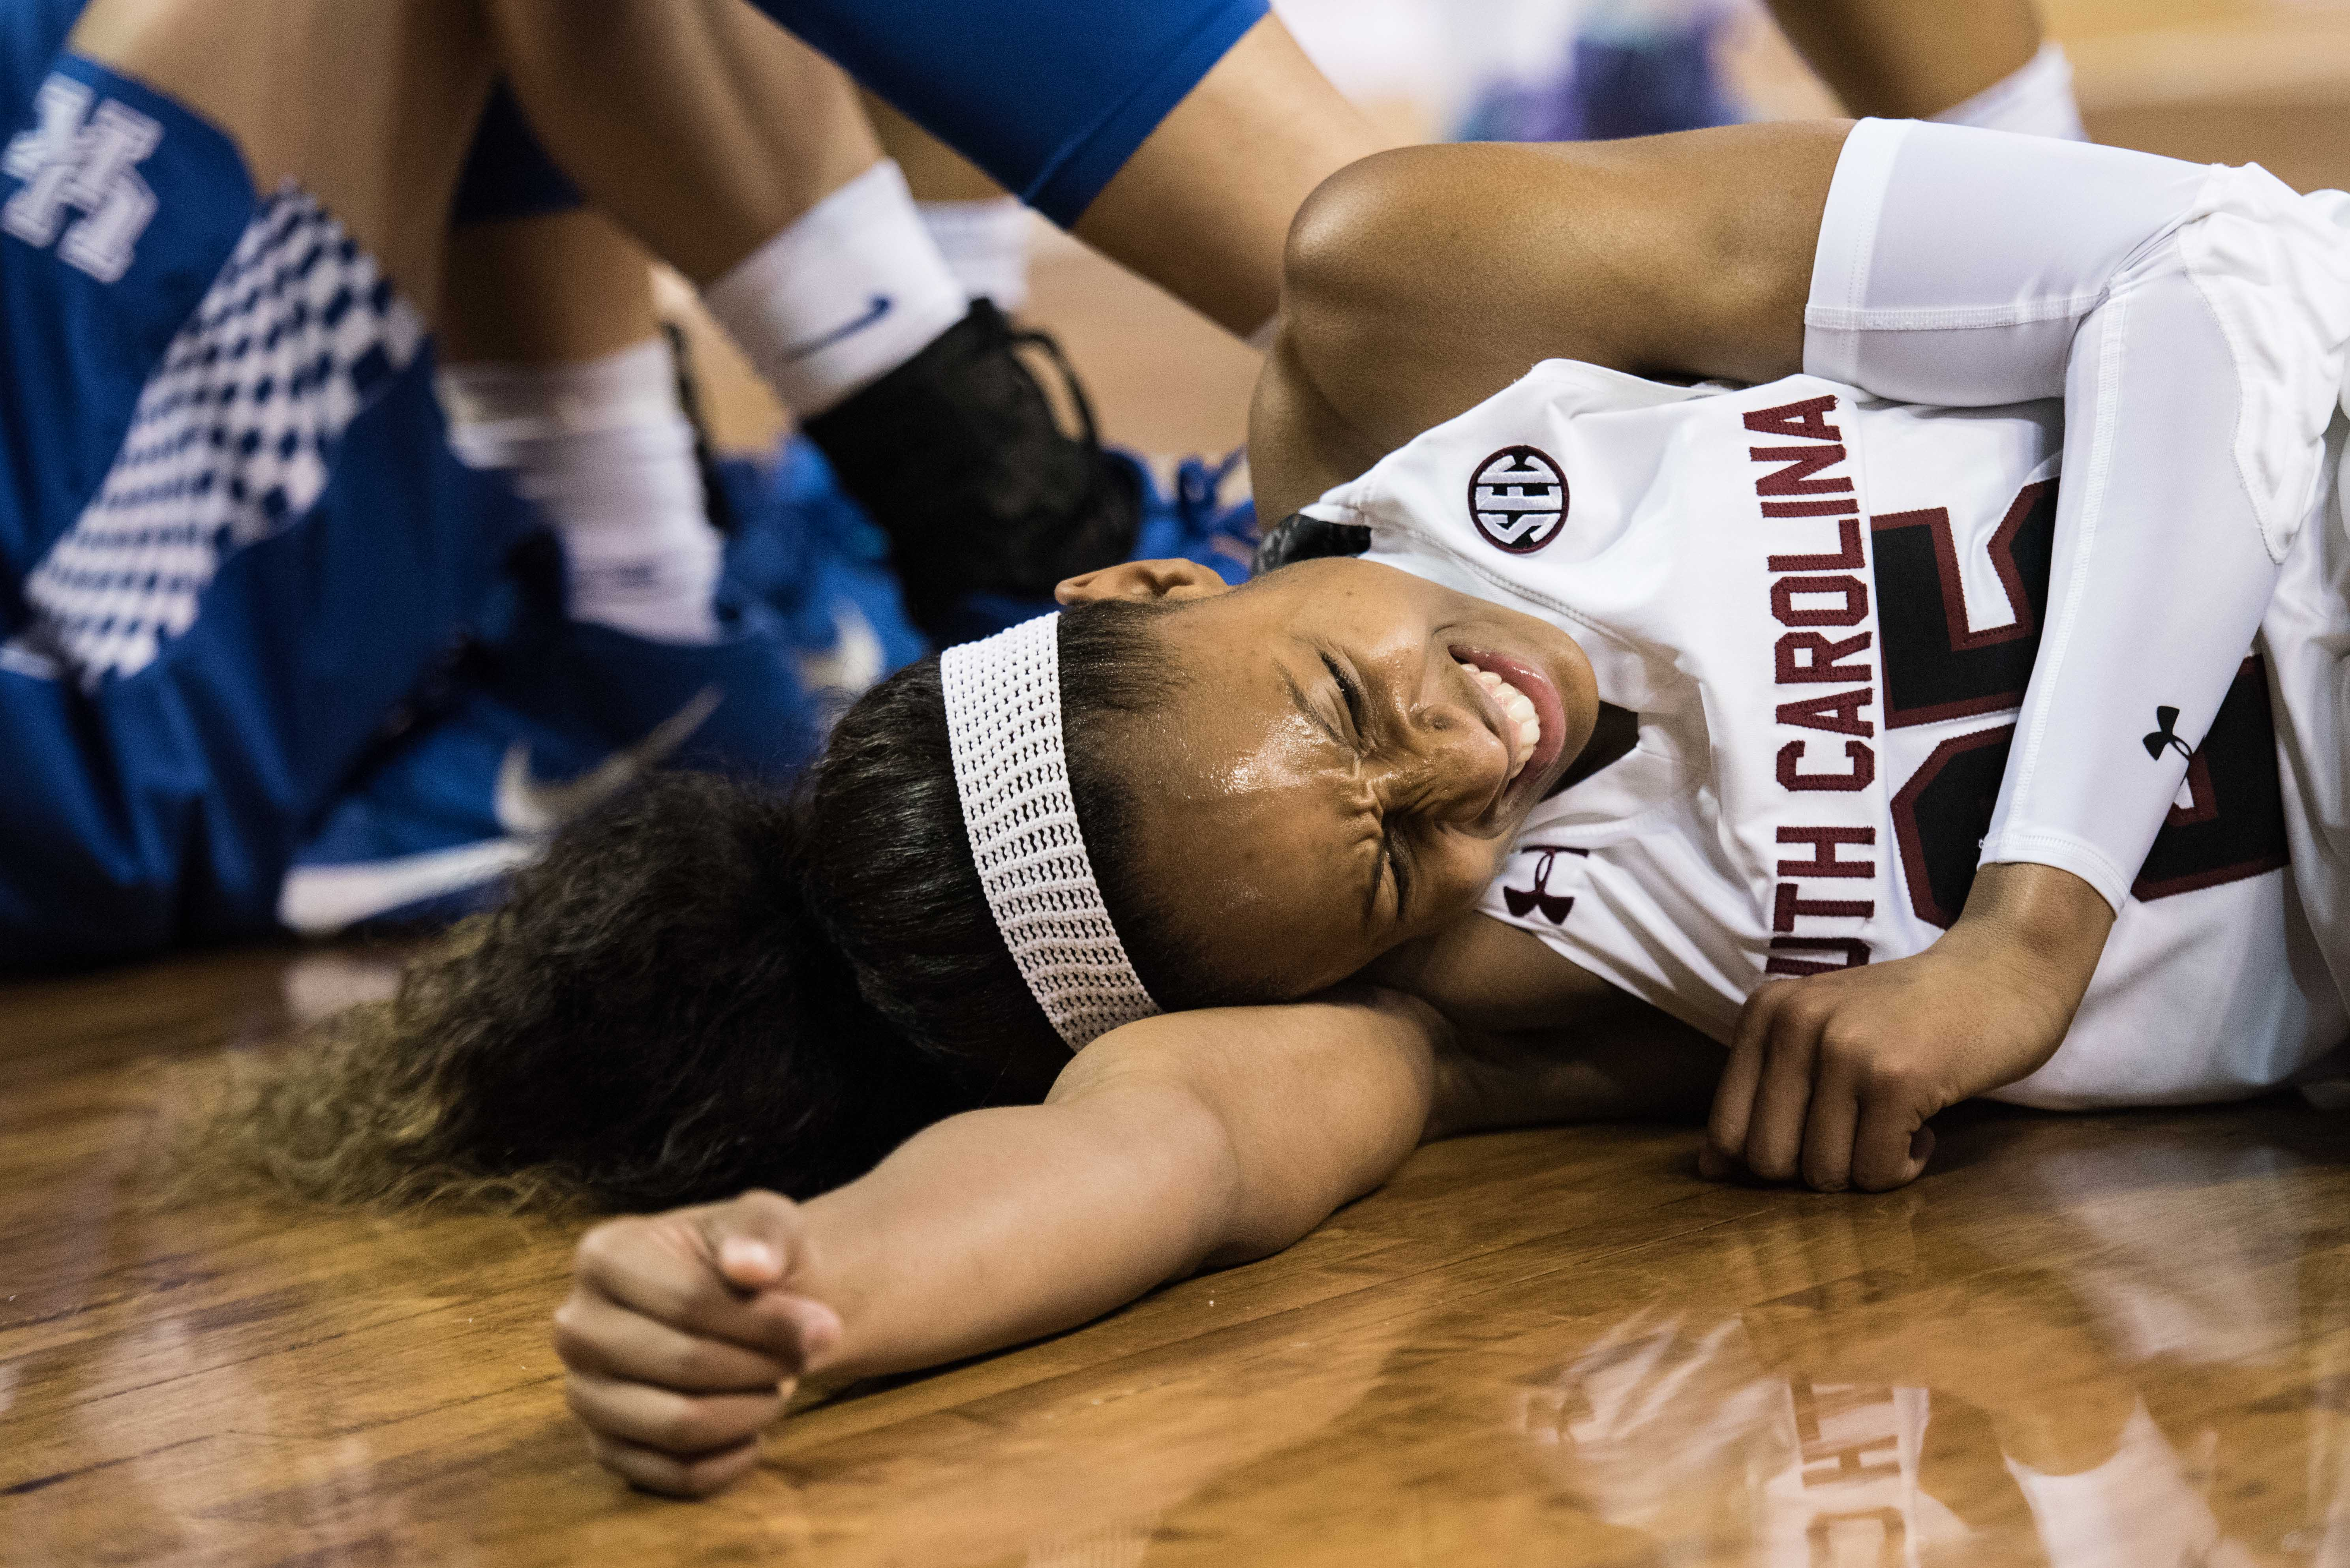 South Carolina guard Tiffany Mitchell (25) grimaces in pain after an injury during the first half of an NCAA college basketball game against Kentucky Thursday, Feb. 4, 2016, in Columbia, S.C. (AP Photo/Sean Rayford)